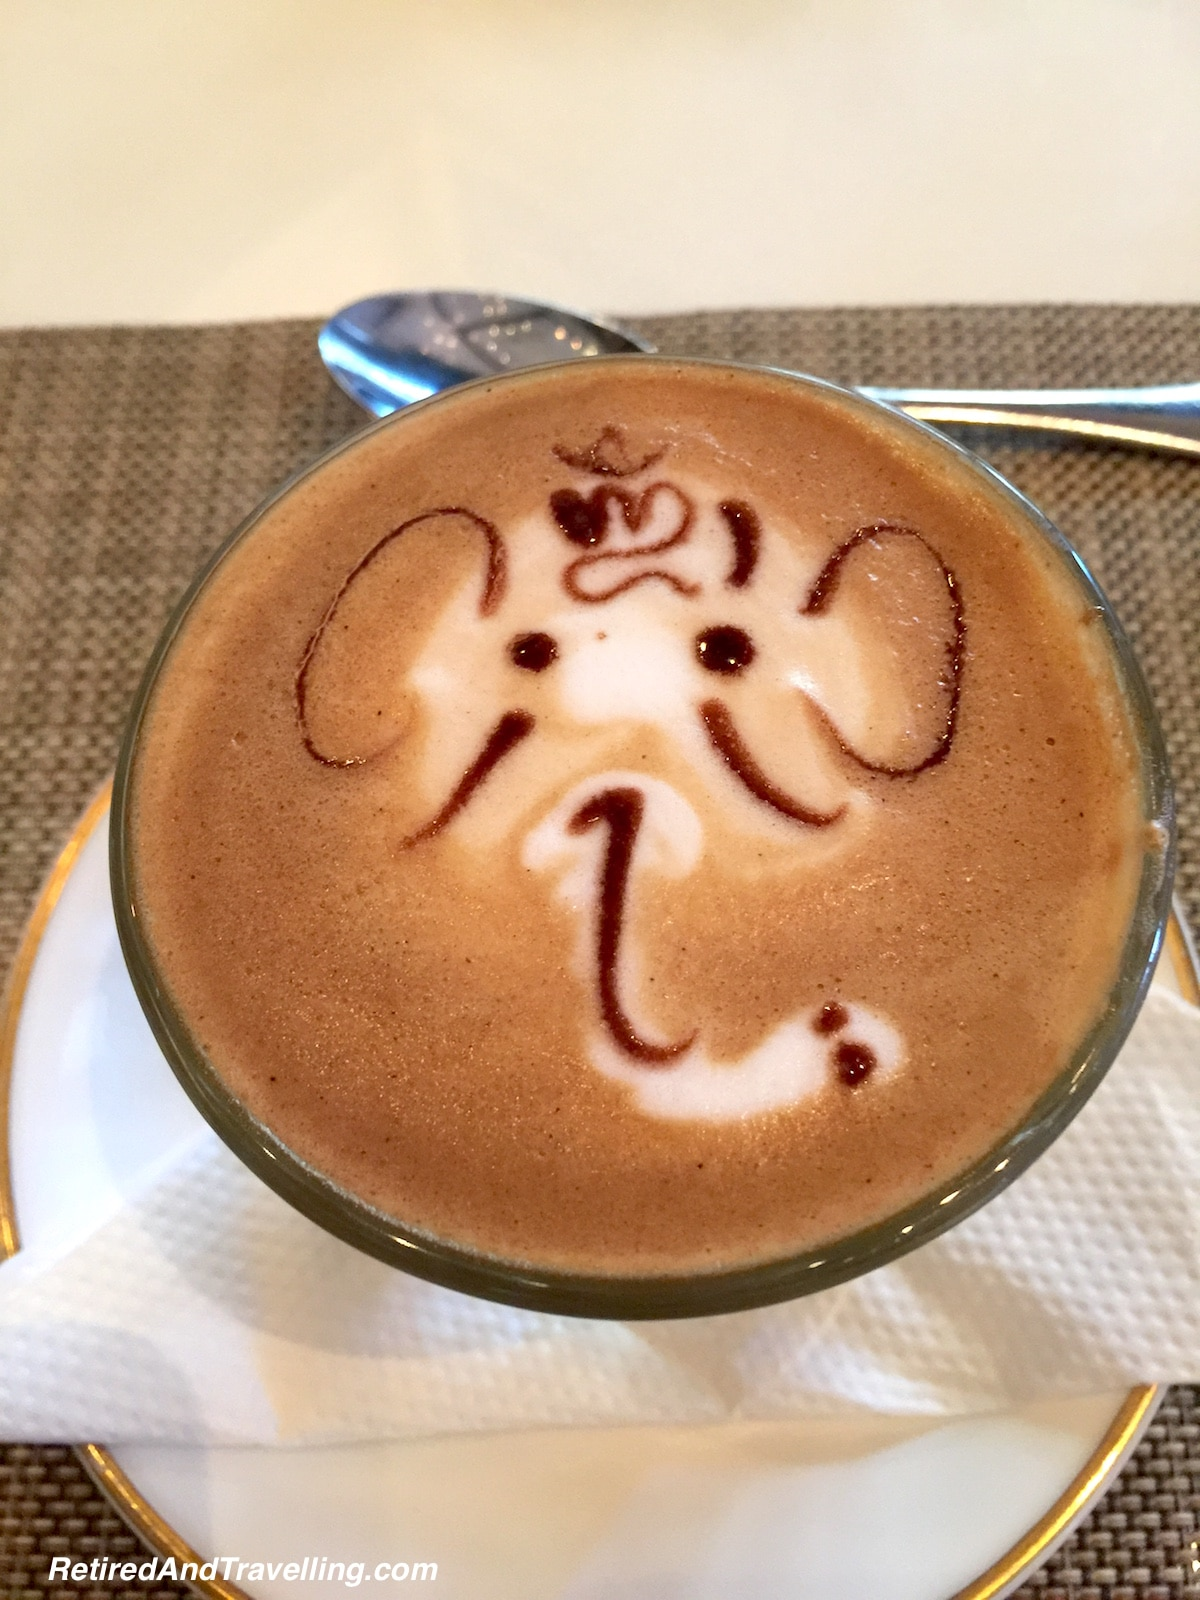 Coffee Art - Food and Travel in 2016.jpg